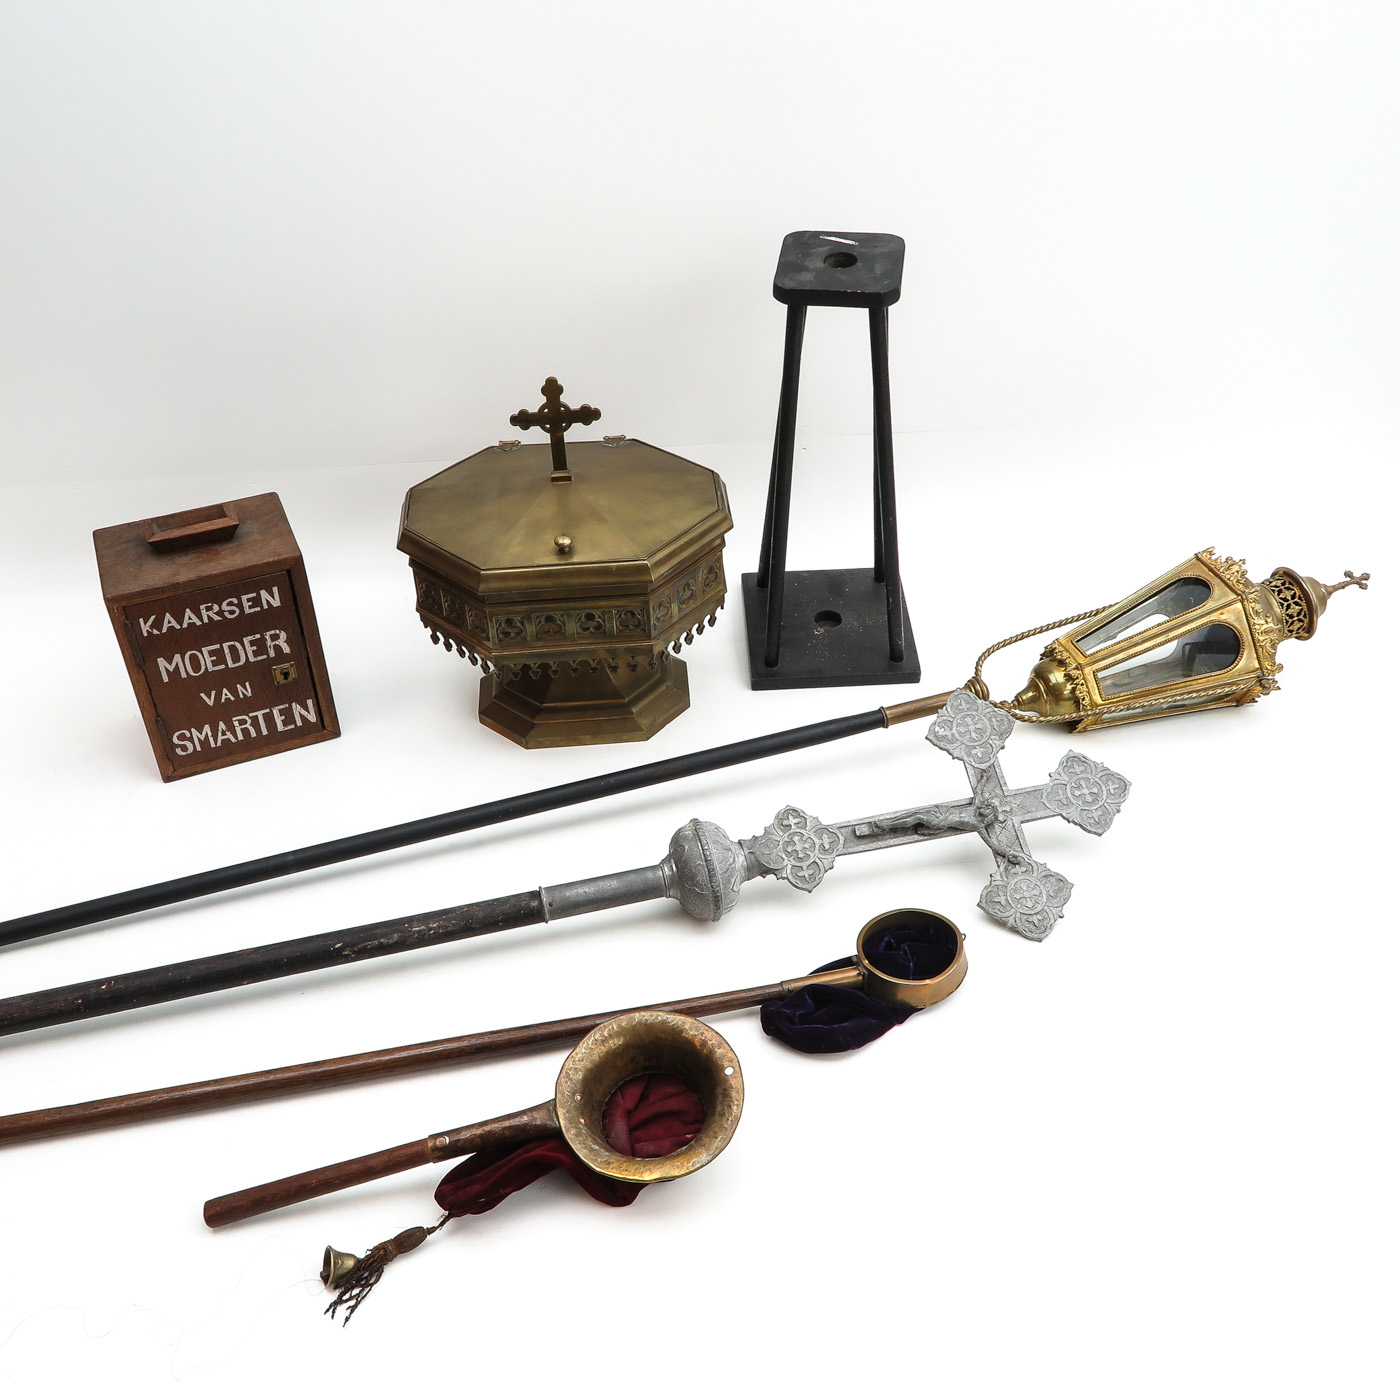 Lot 1401 - A Diverse Collection of Religious Items